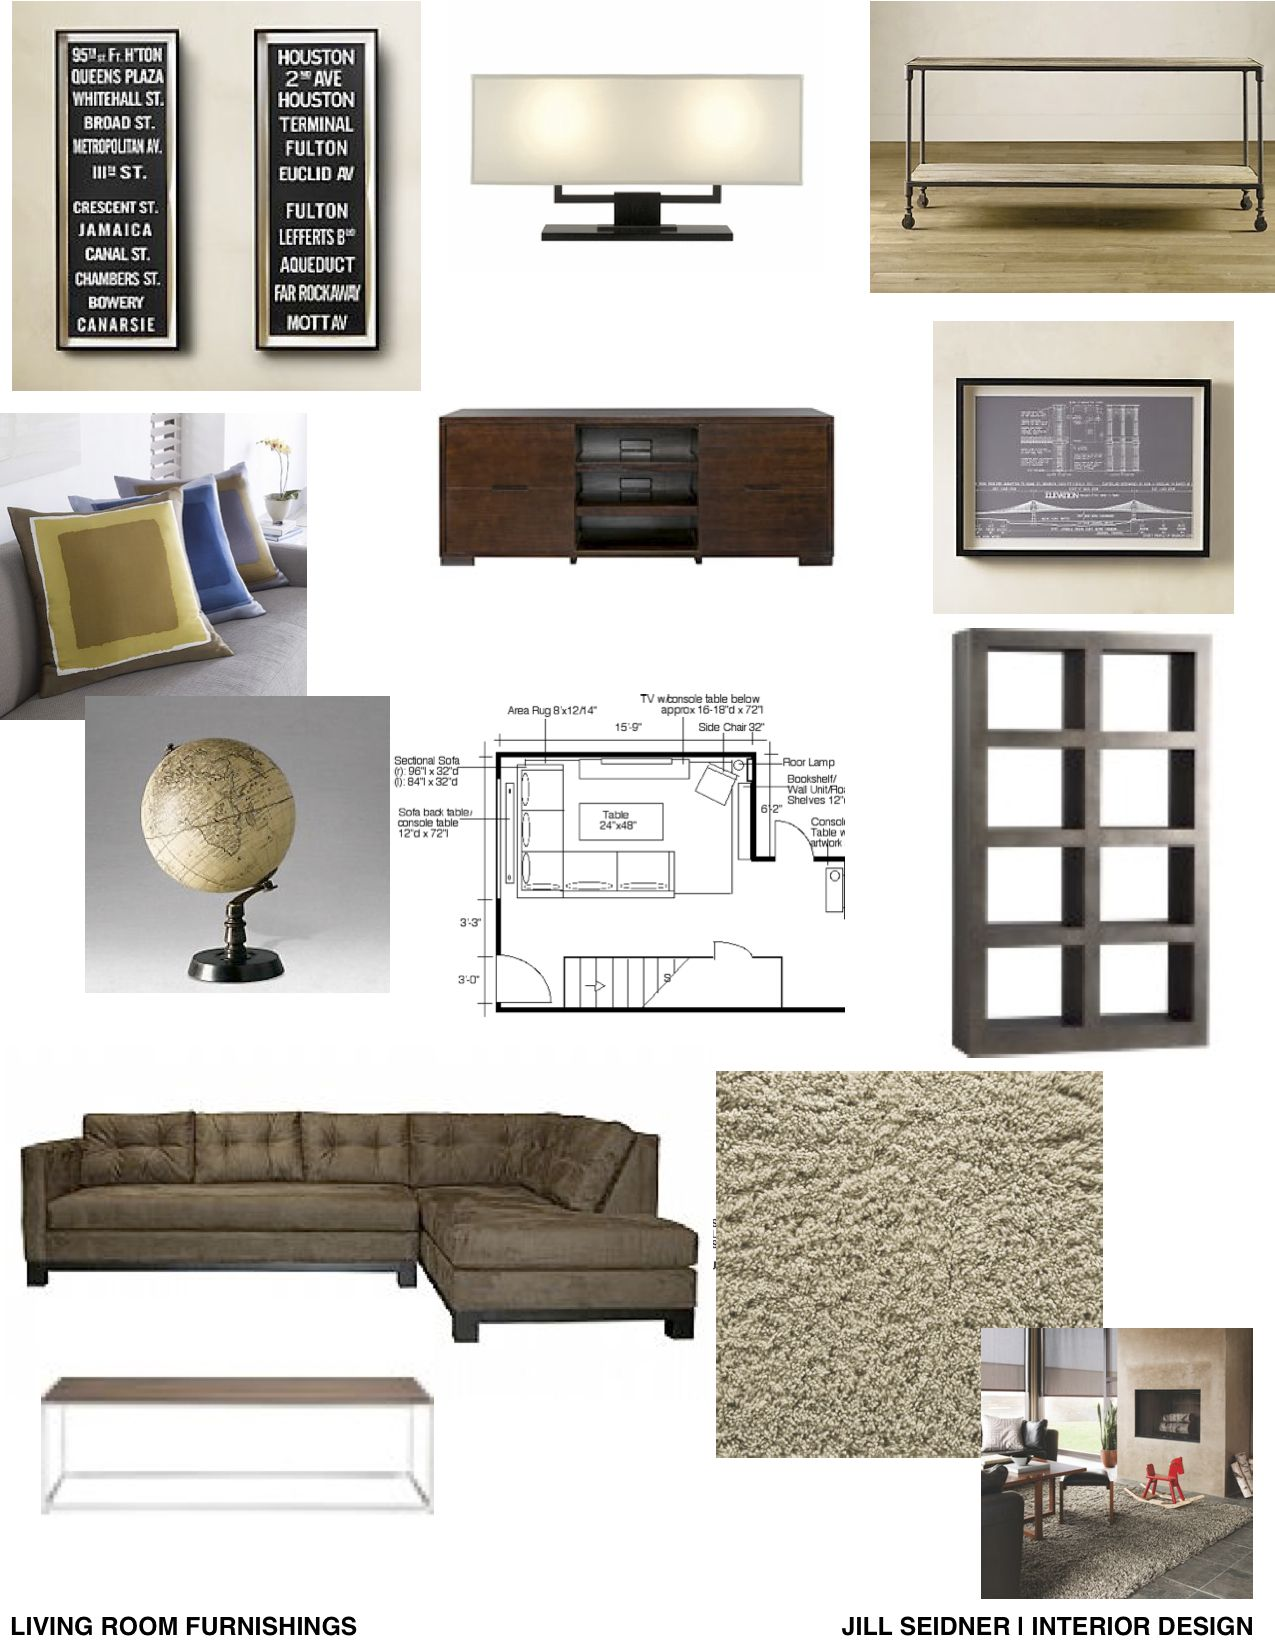 Furnishing Concept Board For Living Room With Images Interior